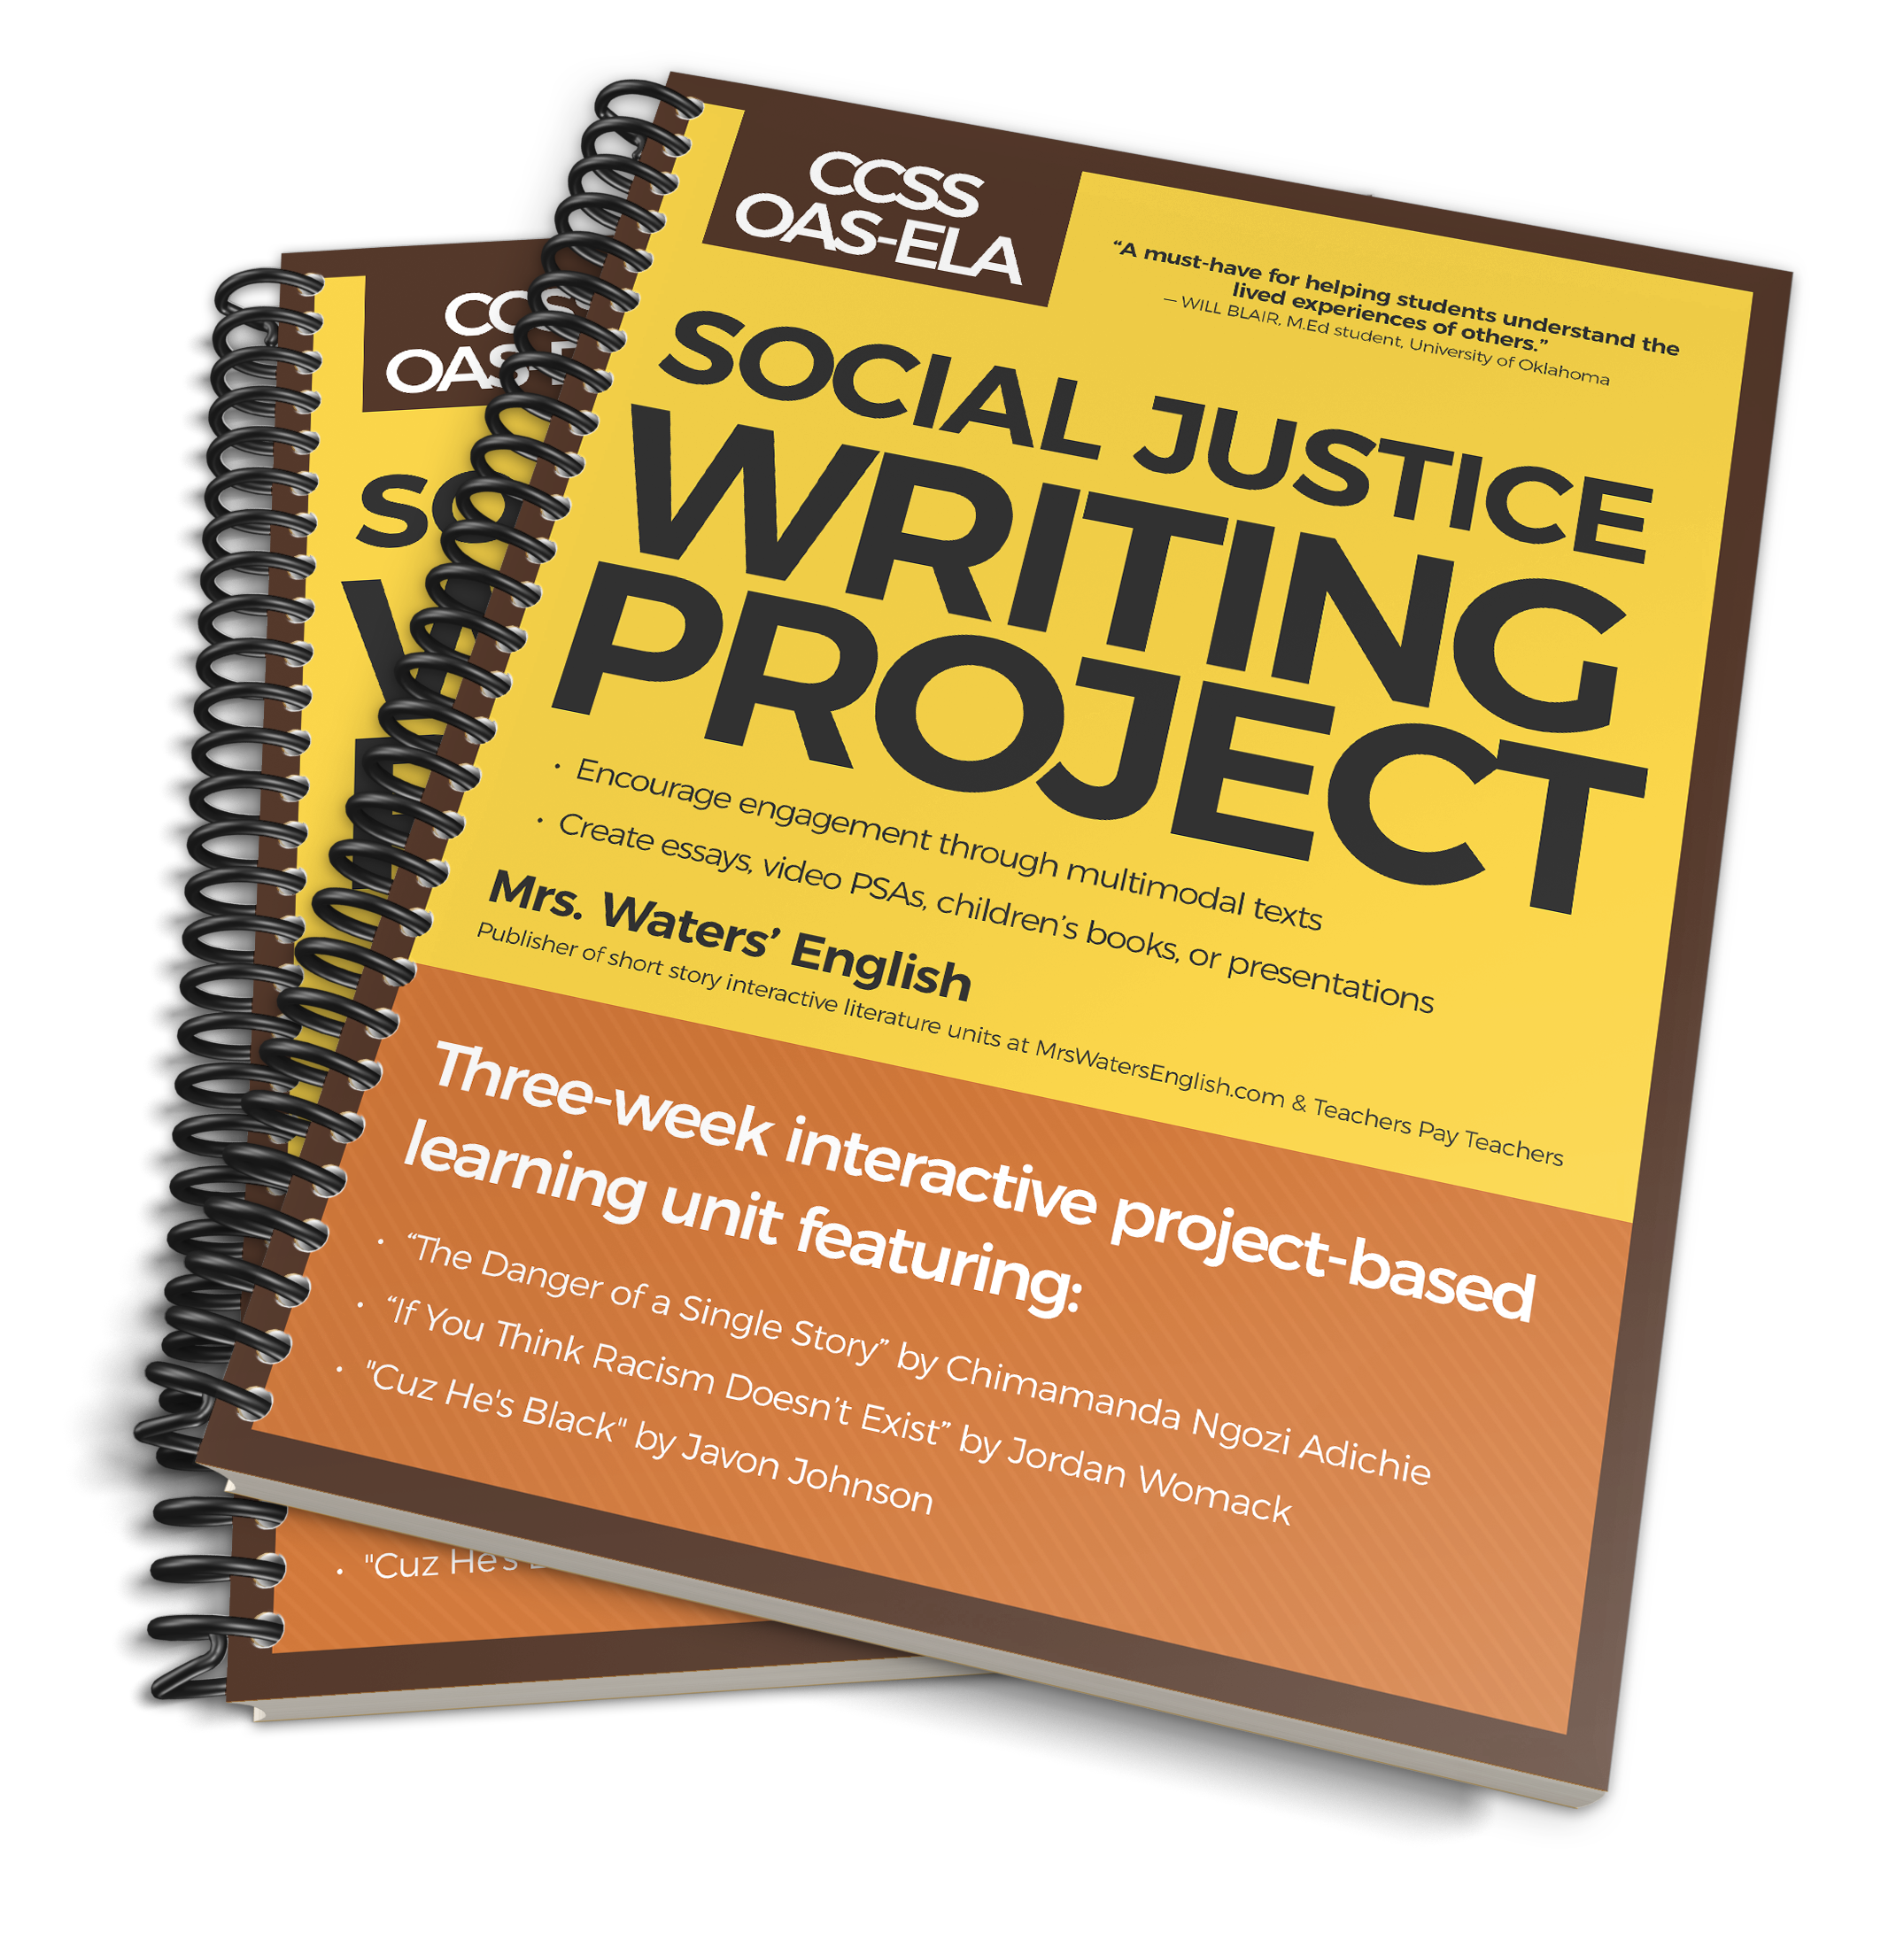 Amplify Student Voices Through Narrative and Argumentative Writing Projects